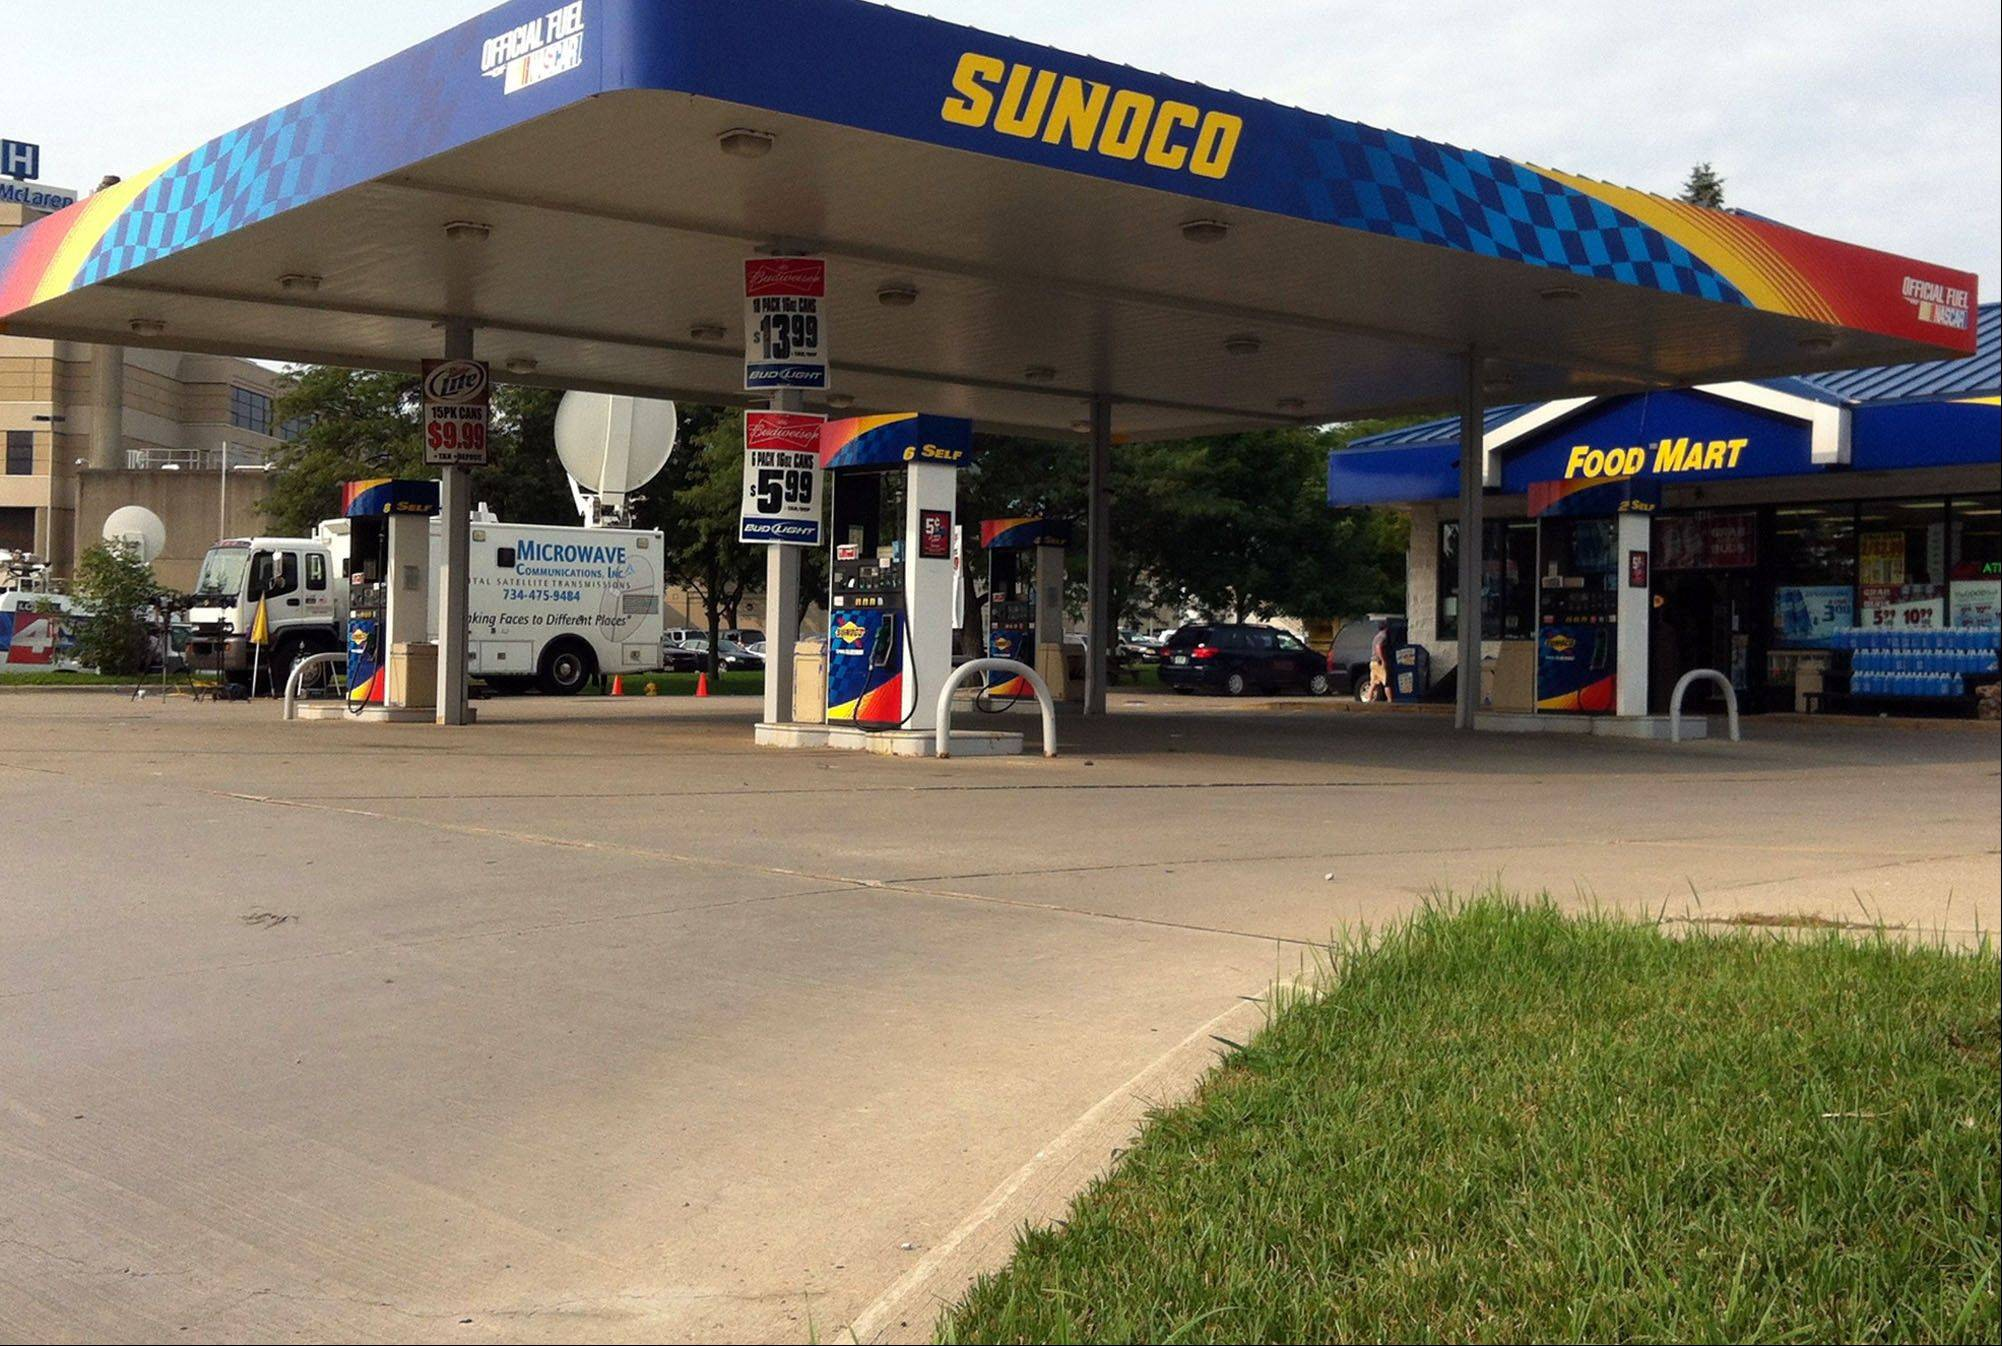 Gas prices are advertised at a Sunoco gas station and market in Lapeer, Mich.